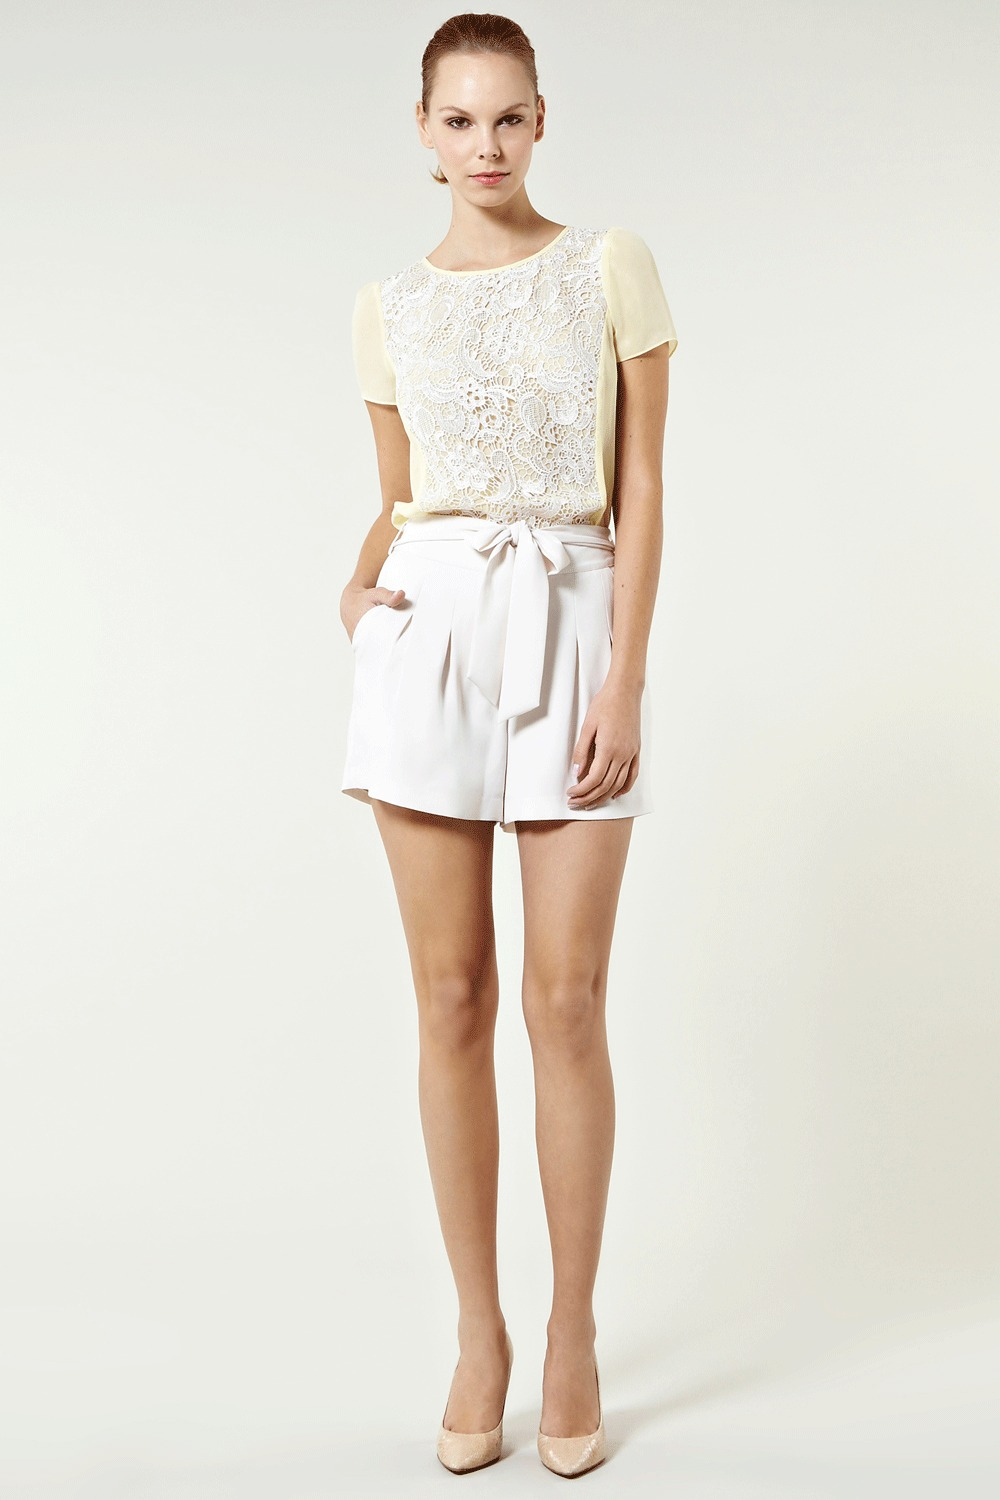 Lace Panel Top - neckline: round neck; pattern: plain, two-tone, lace; back detail: contrast pattern/fabric at back, keyhole/peephole detail at back; predominant colour: primrose yellow; occasions: casual, evening, work, occasion; length: standard; style: top; fibres: polyester/polyamide - 100%; material texture: lace; fit: straight cut; trends: pastels, white; sleeve length: short sleeve; sleeve style: standard; texture group: lace; pattern type: fabric; pattern size: standard